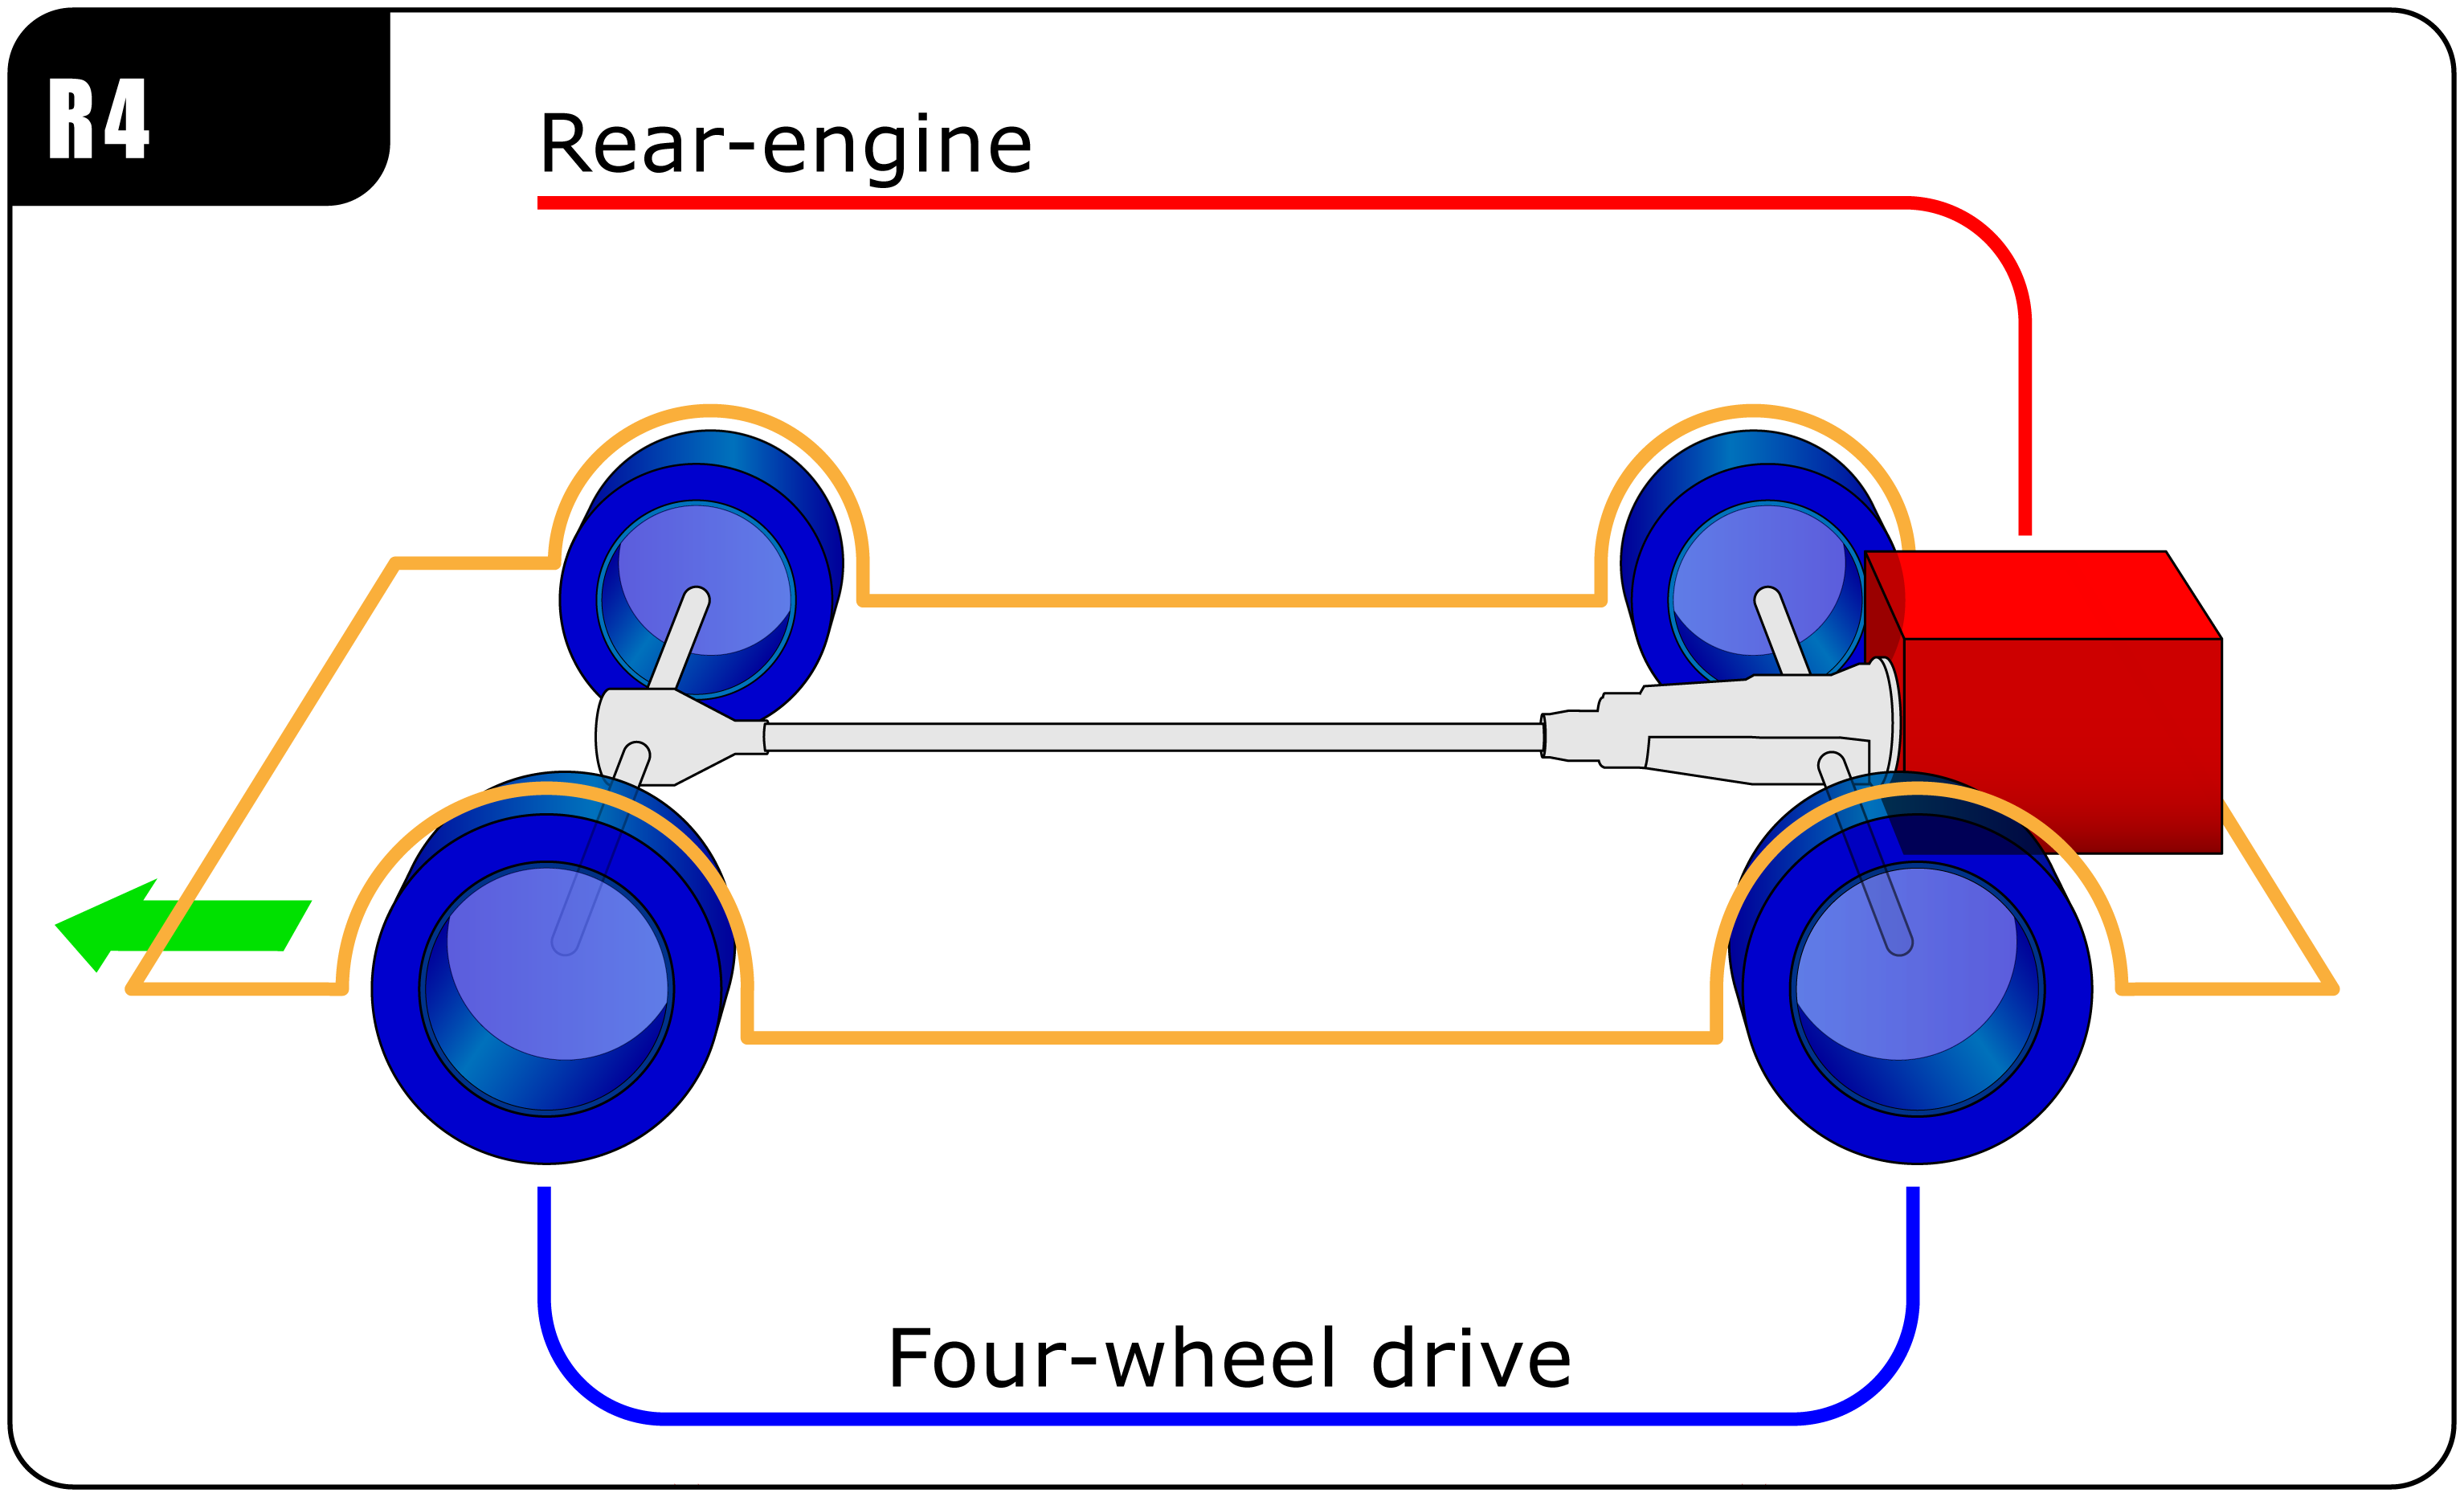 Rear Engine Diagram Wiring Data Schematic Electric Car File Automotive Diagrams 06 En Wikimedia Commons Rh Org Mid Snapper Rider